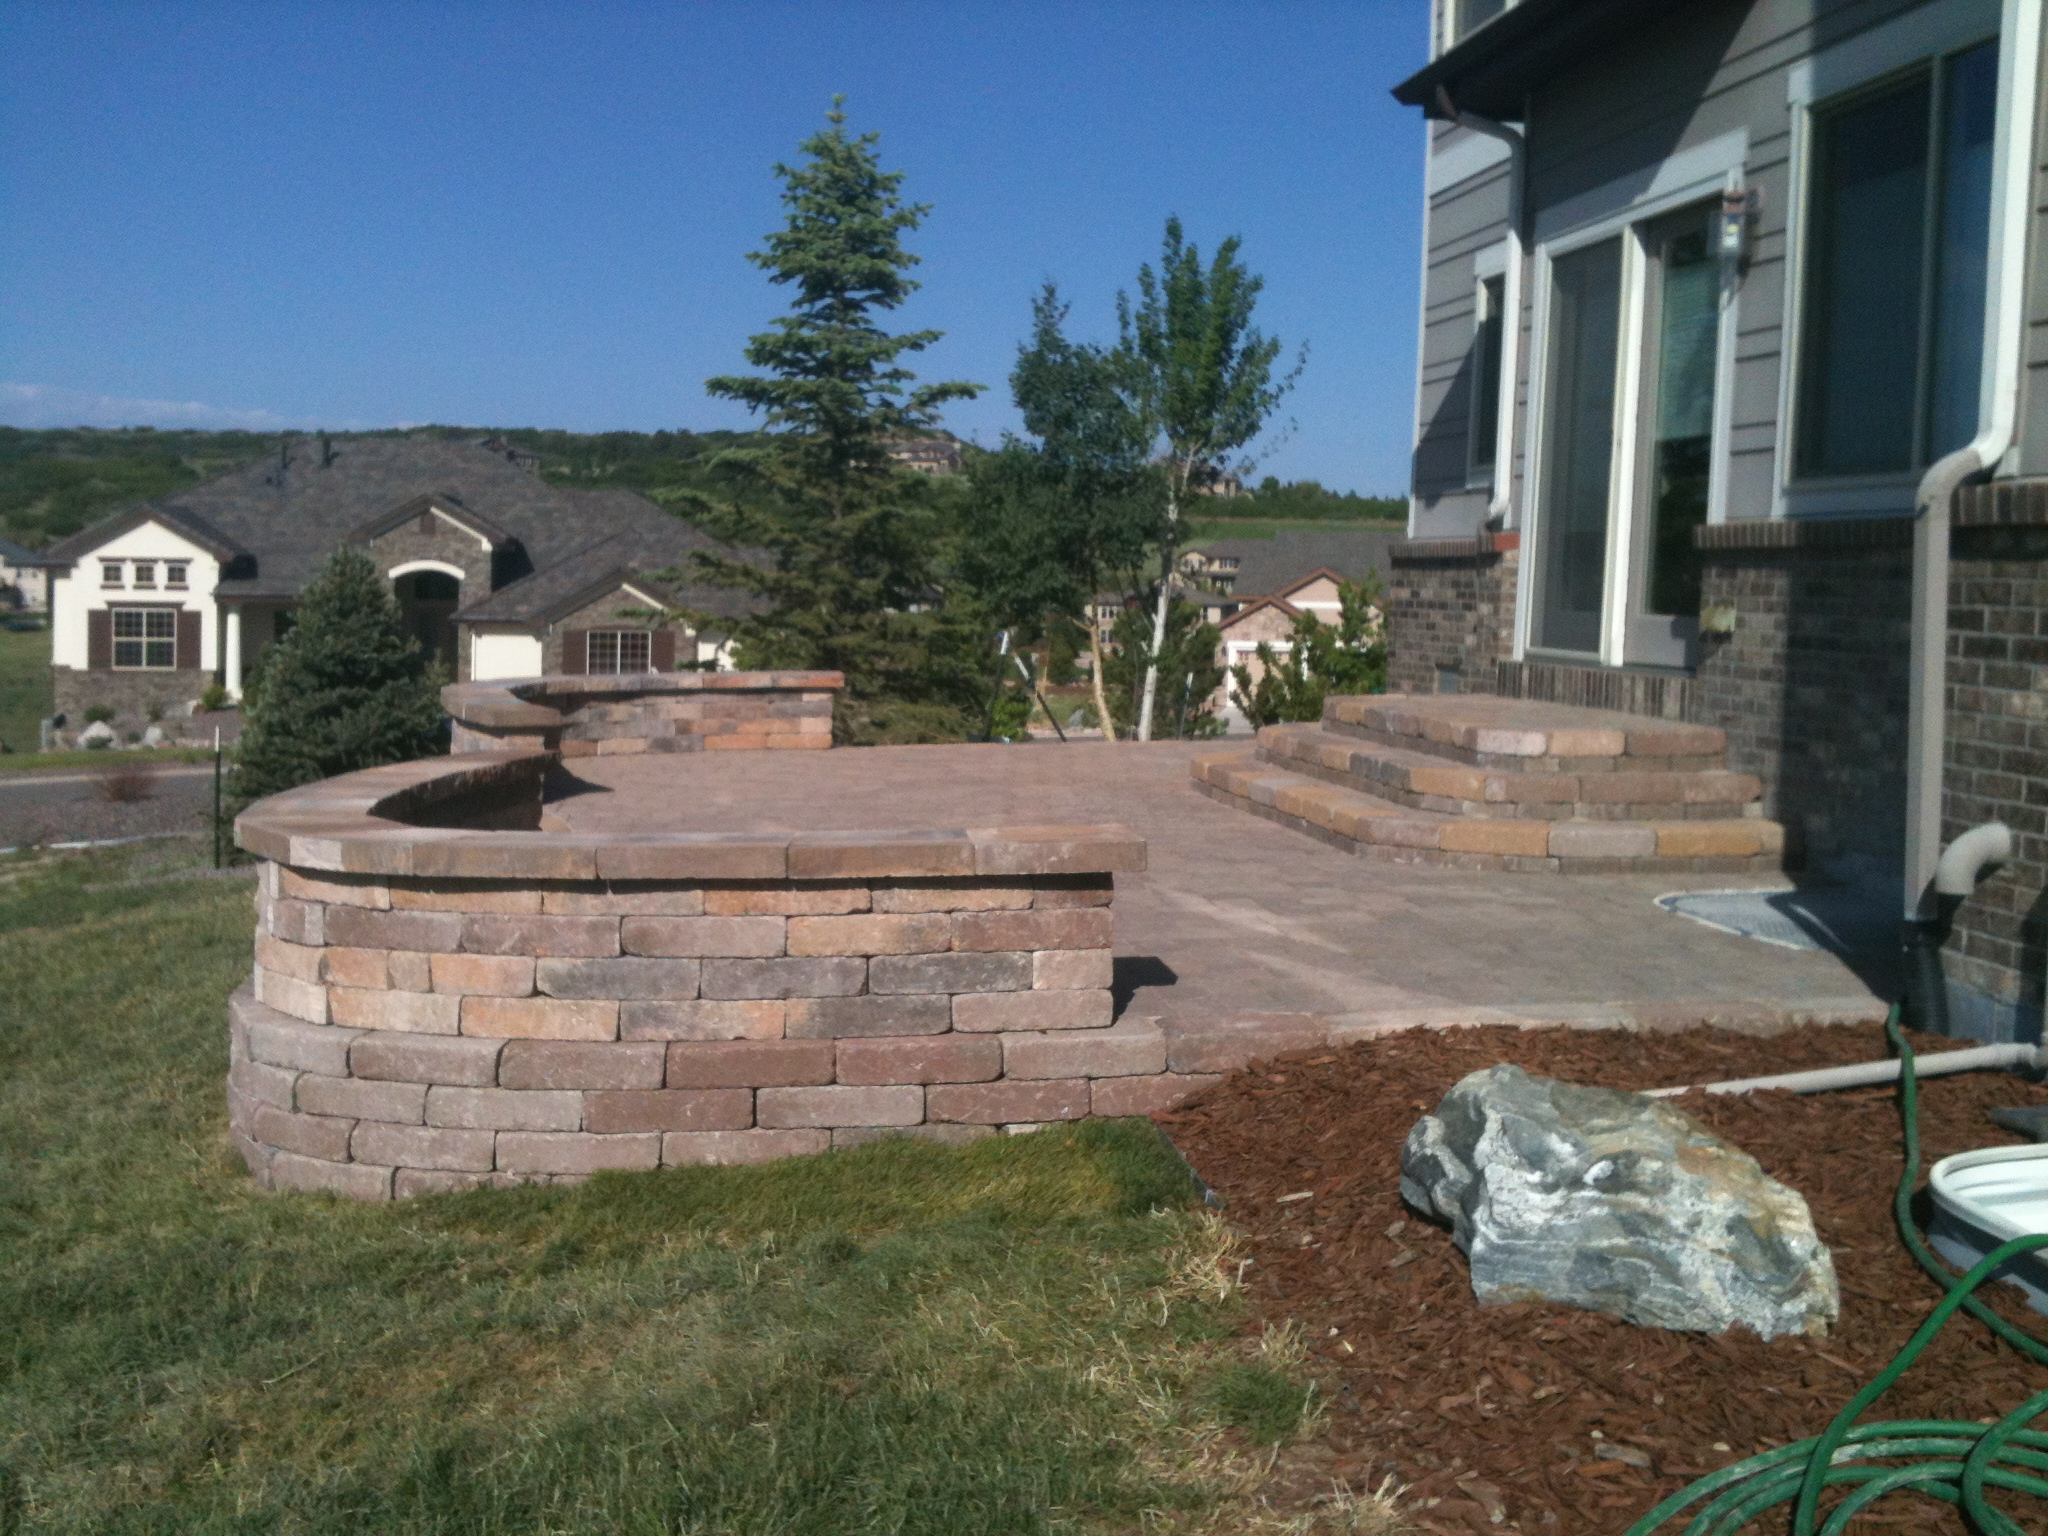 Concrete Patio Landscaping CO - Landscape Architects on Front Range Outdoor Living id=65574